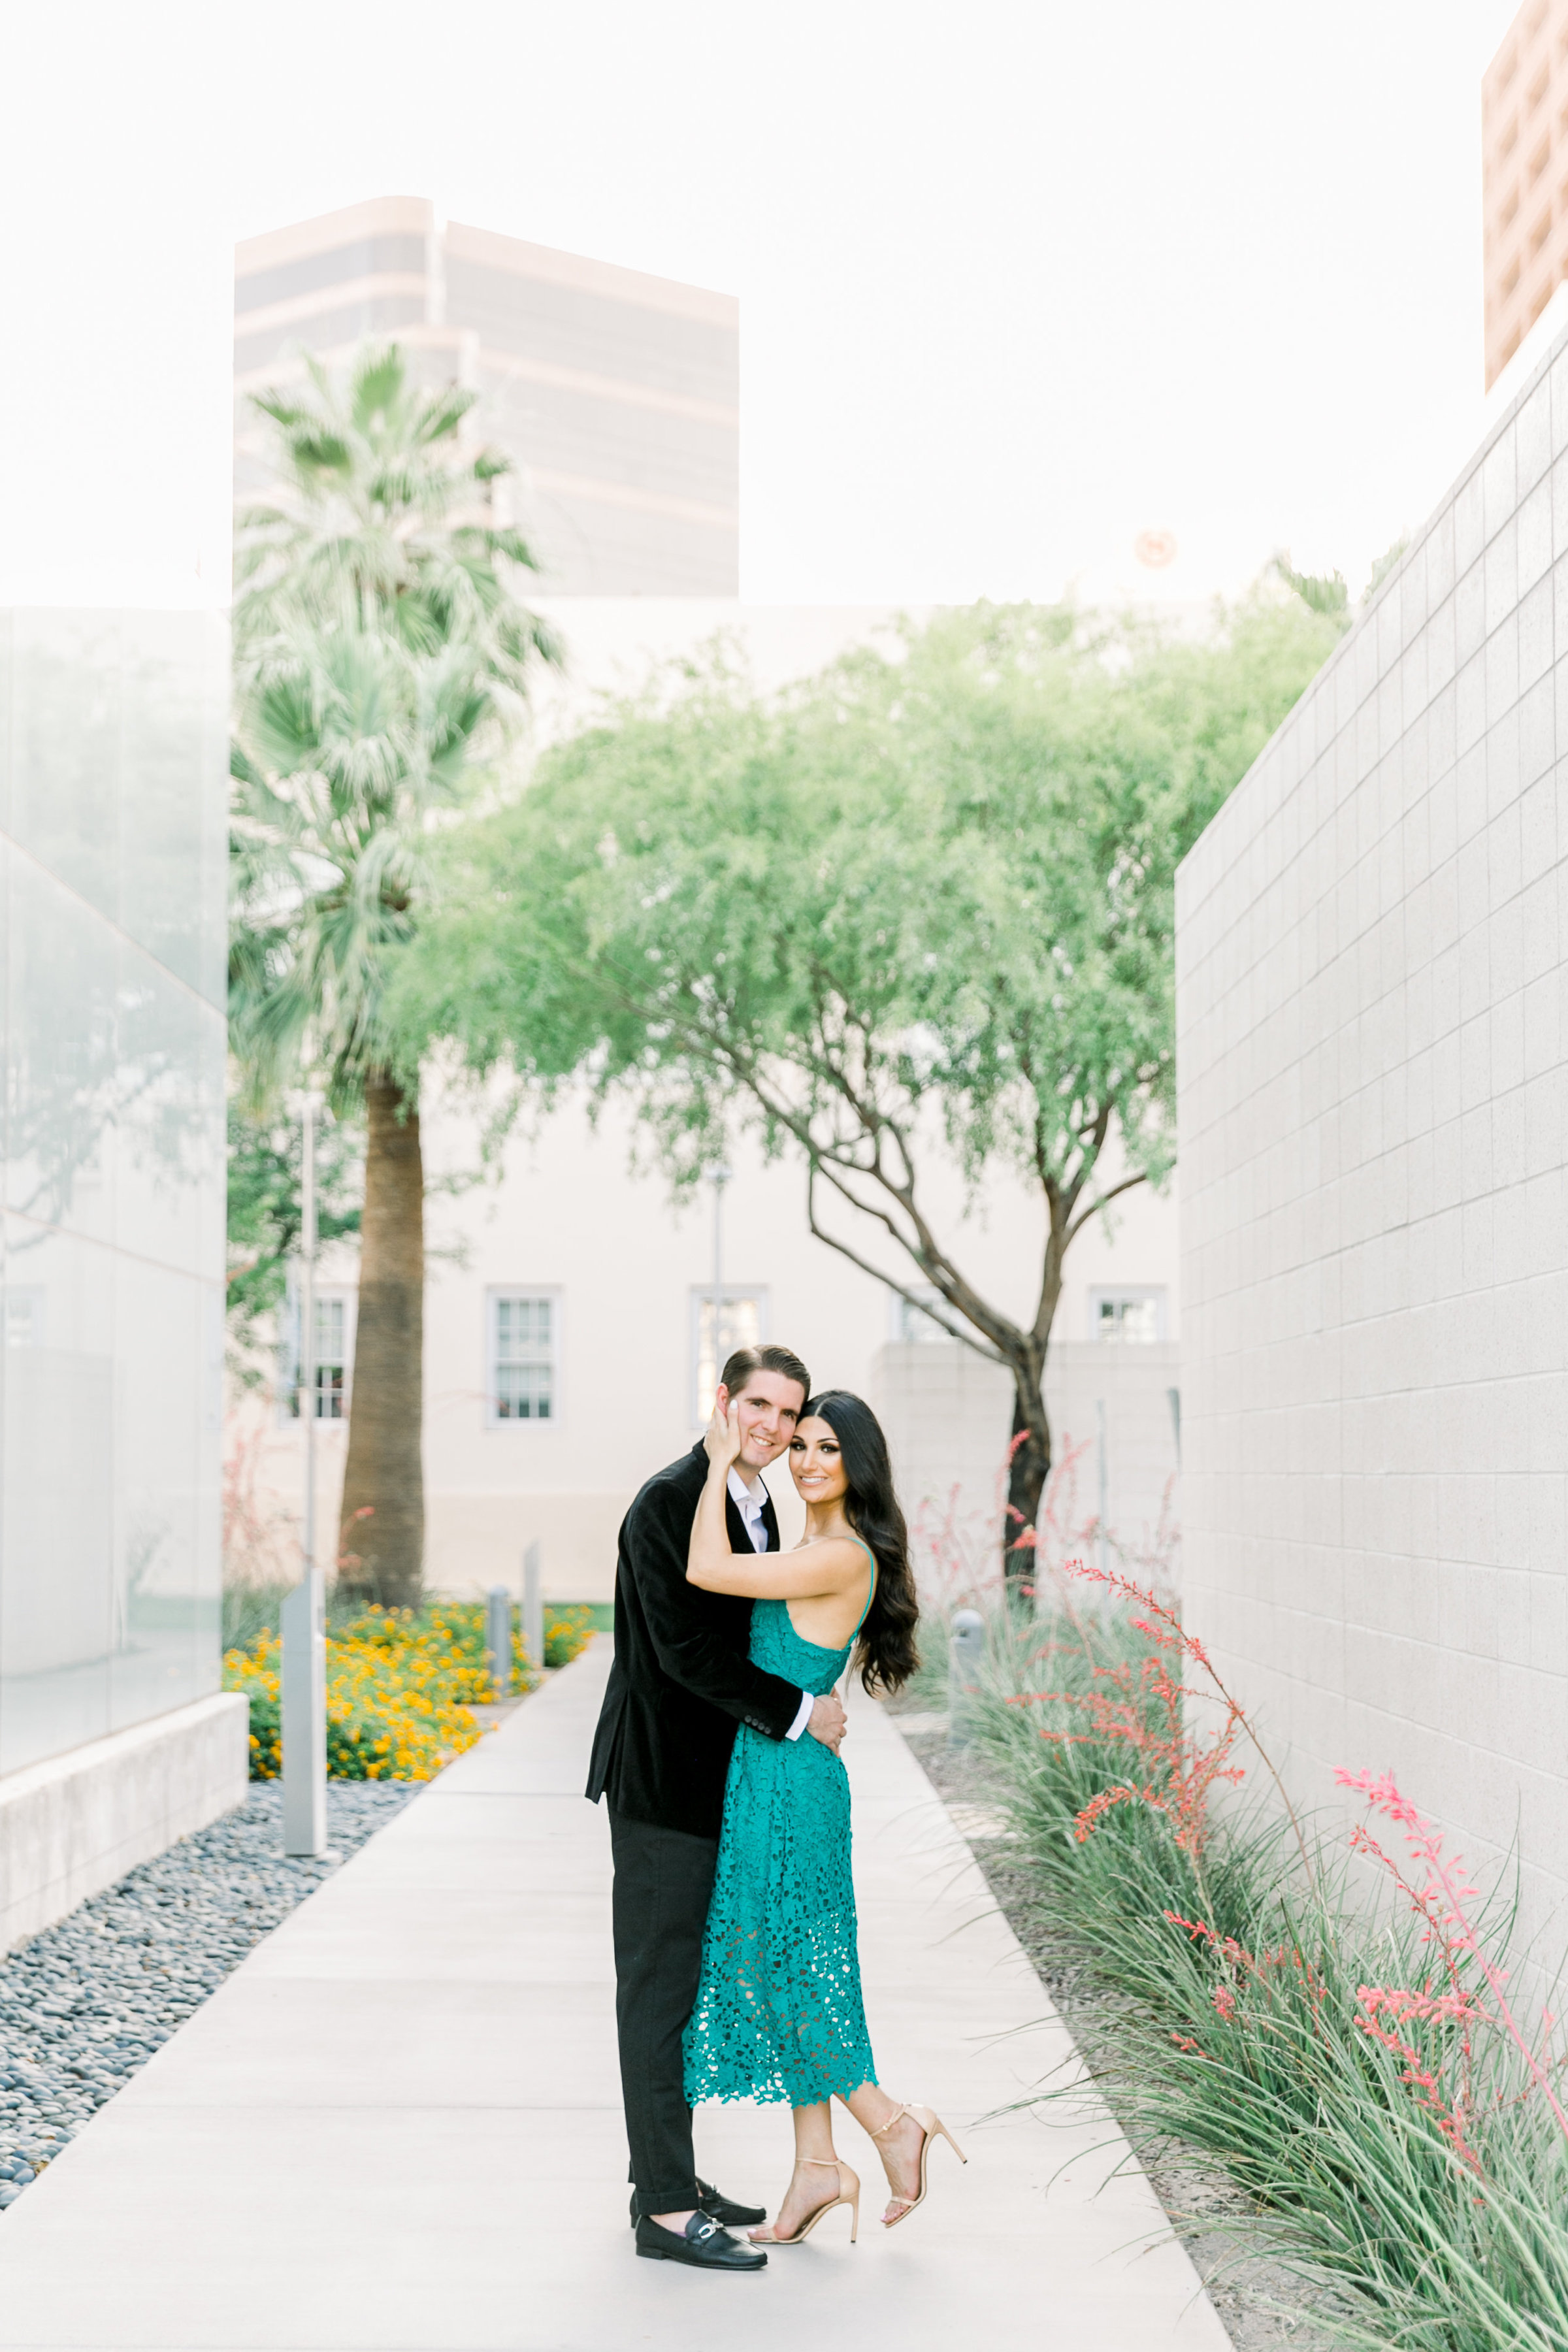 Karlie Colleen Photography - Arizona Engagement City Shoot - Kim & Tim-93